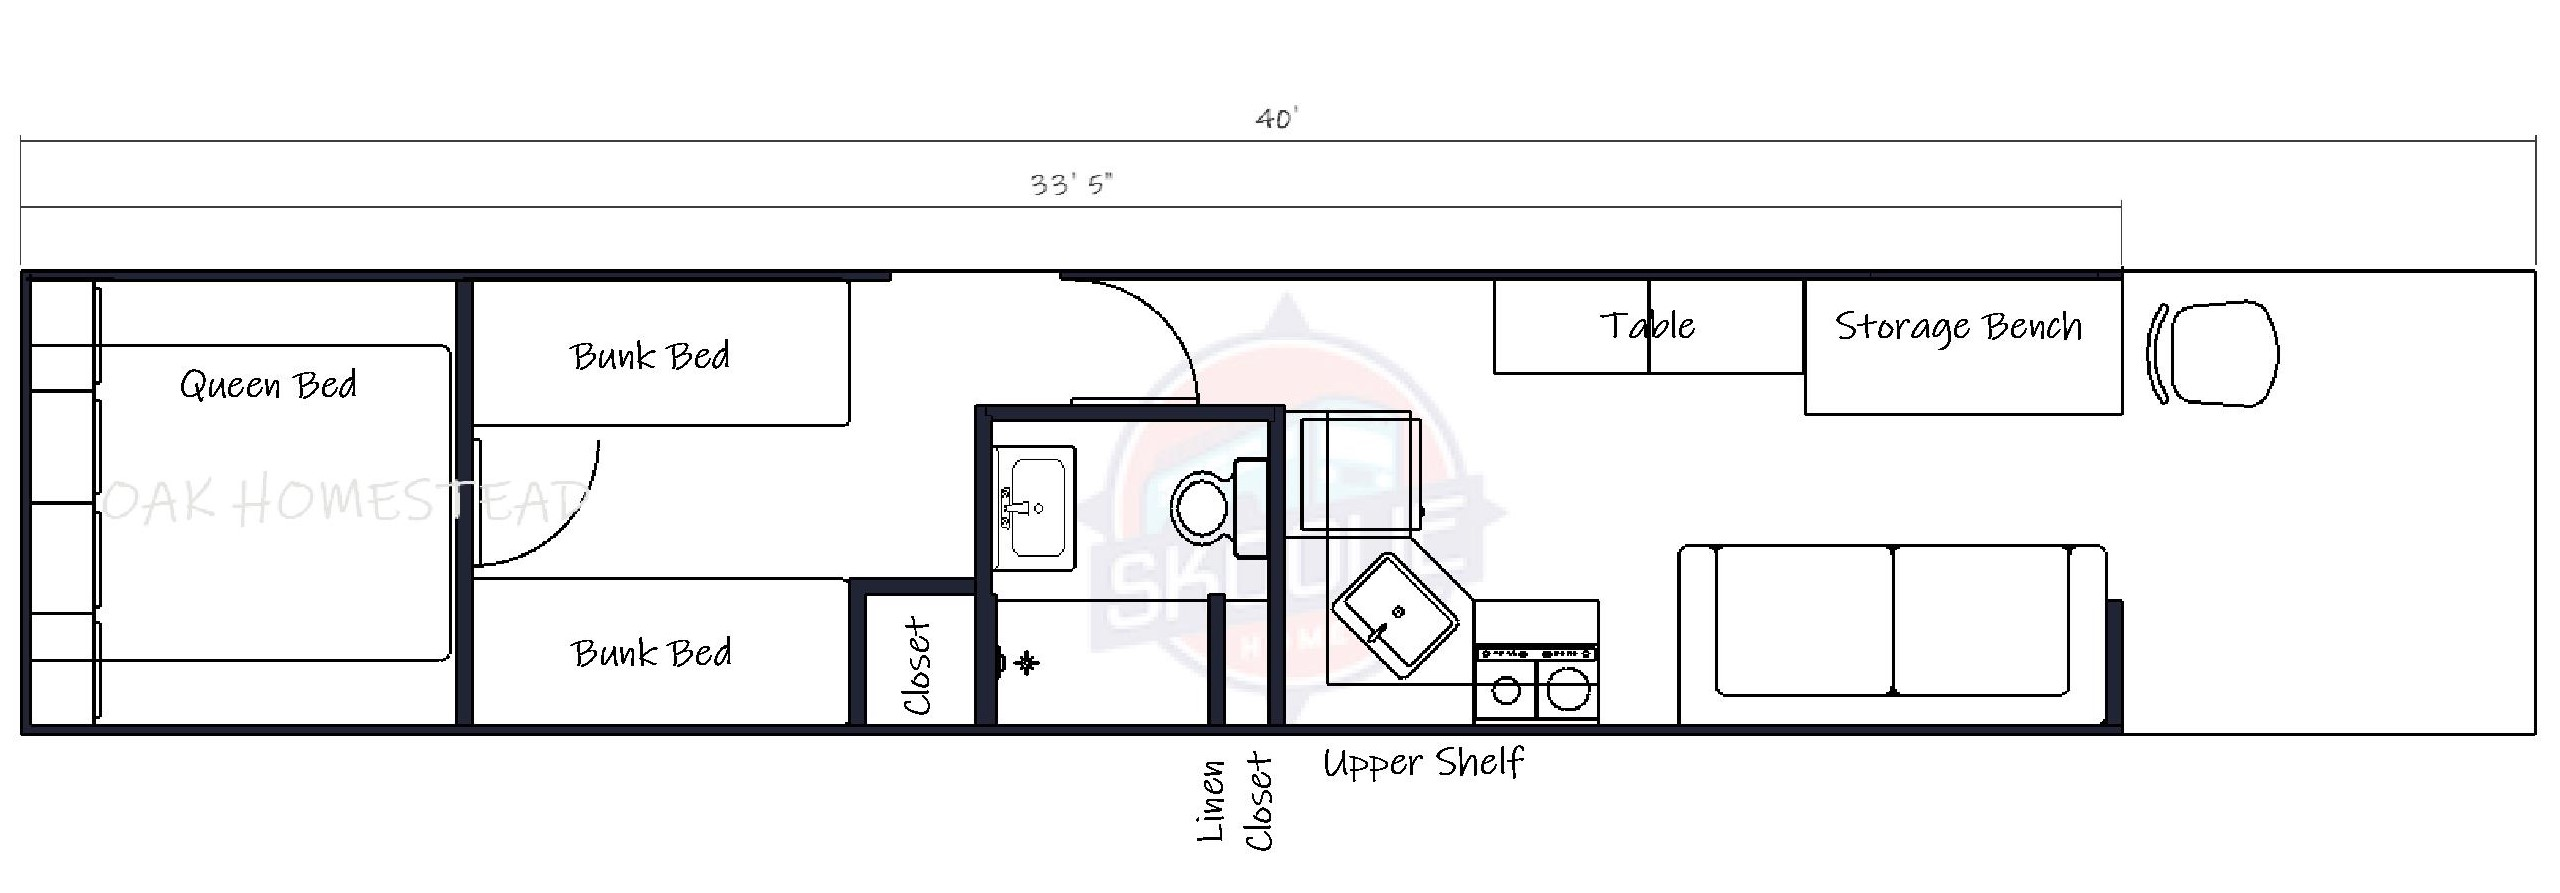 40 foot Skoolie Homes layout